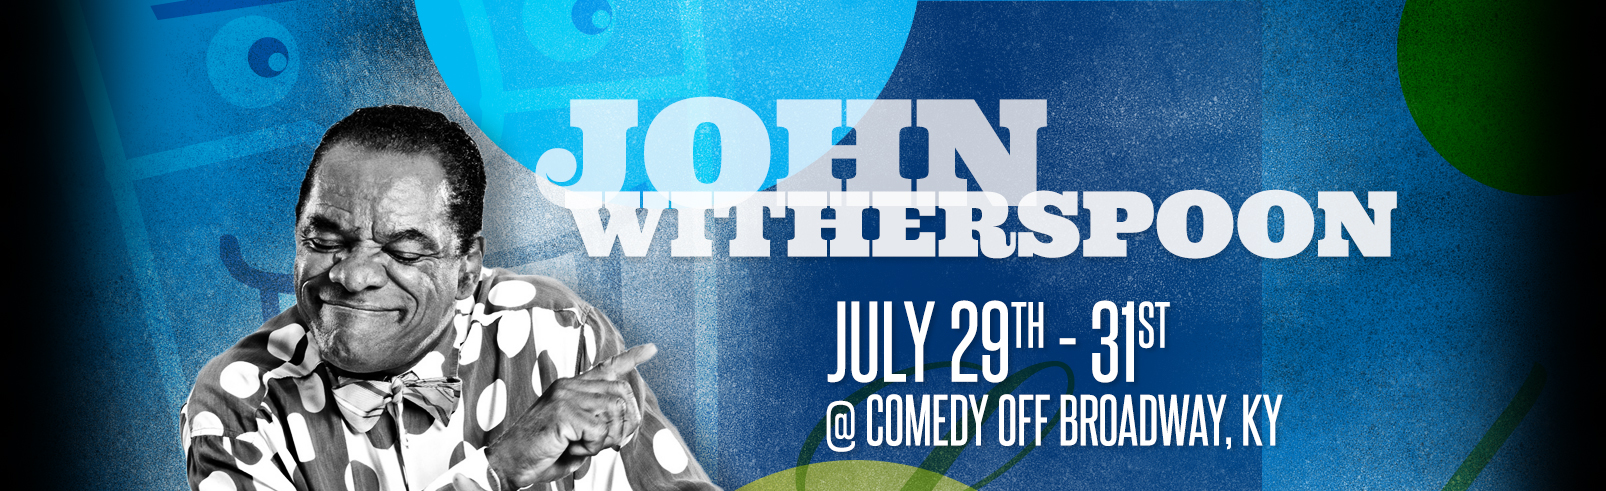 John Witherspoon @ Comedy Off Broadway